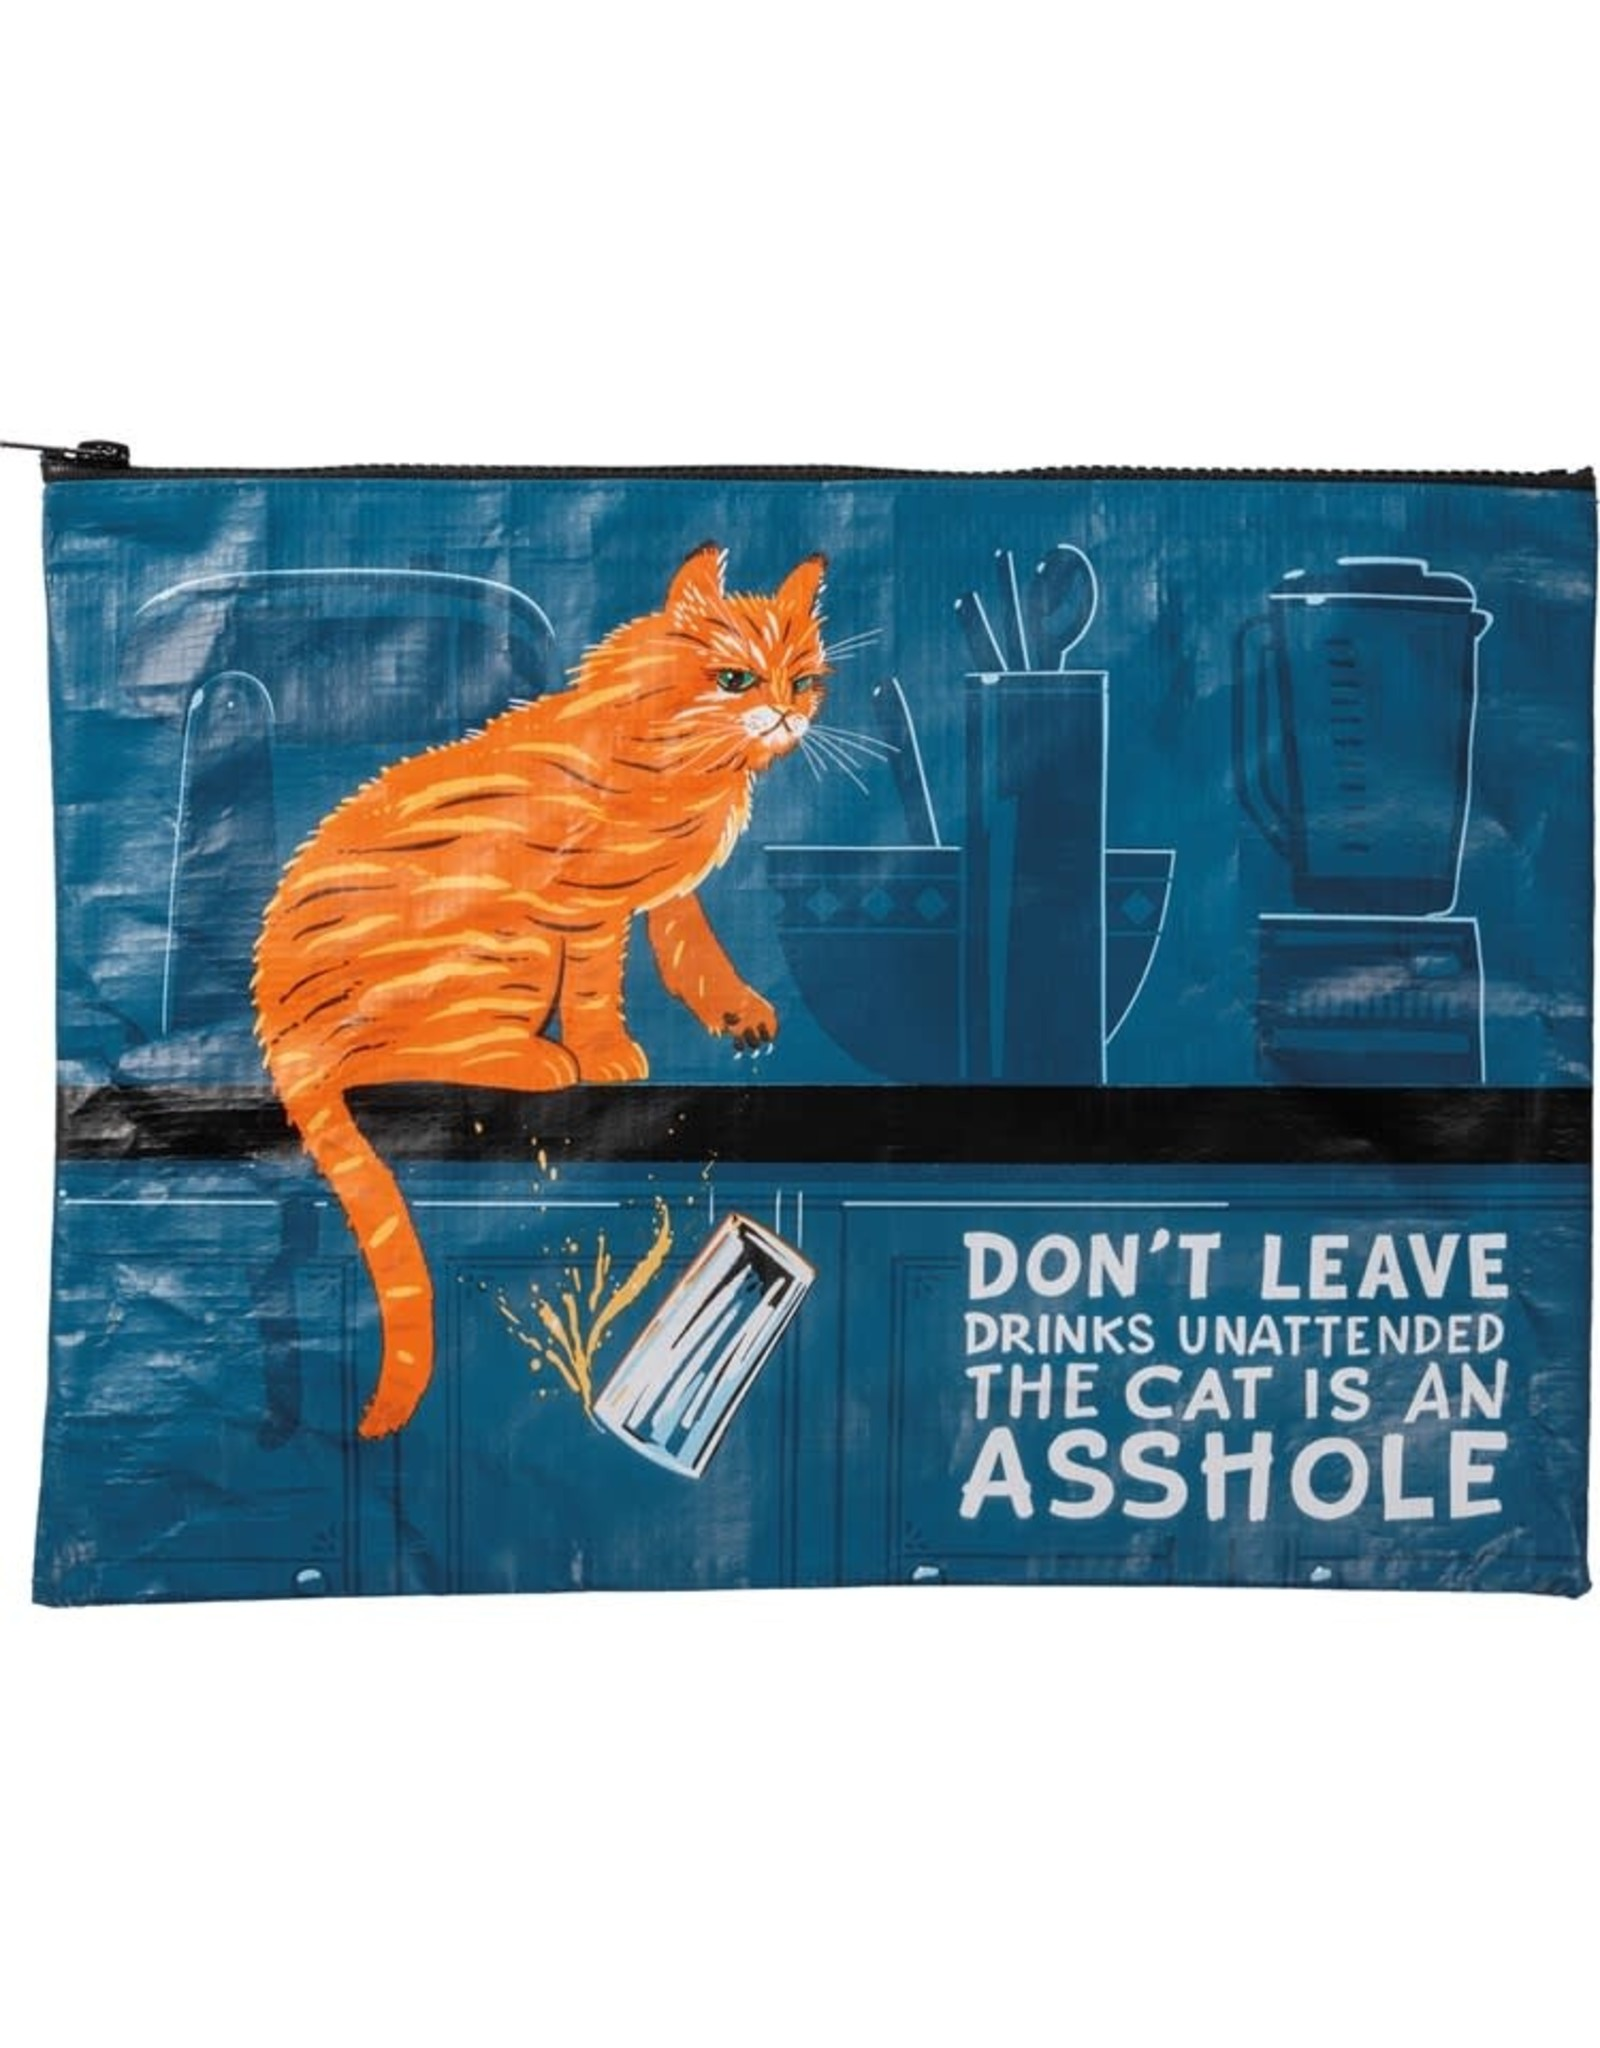 Bag (Zip) - Don't Leave Drinks Unattended, The Cat Is An Asshole